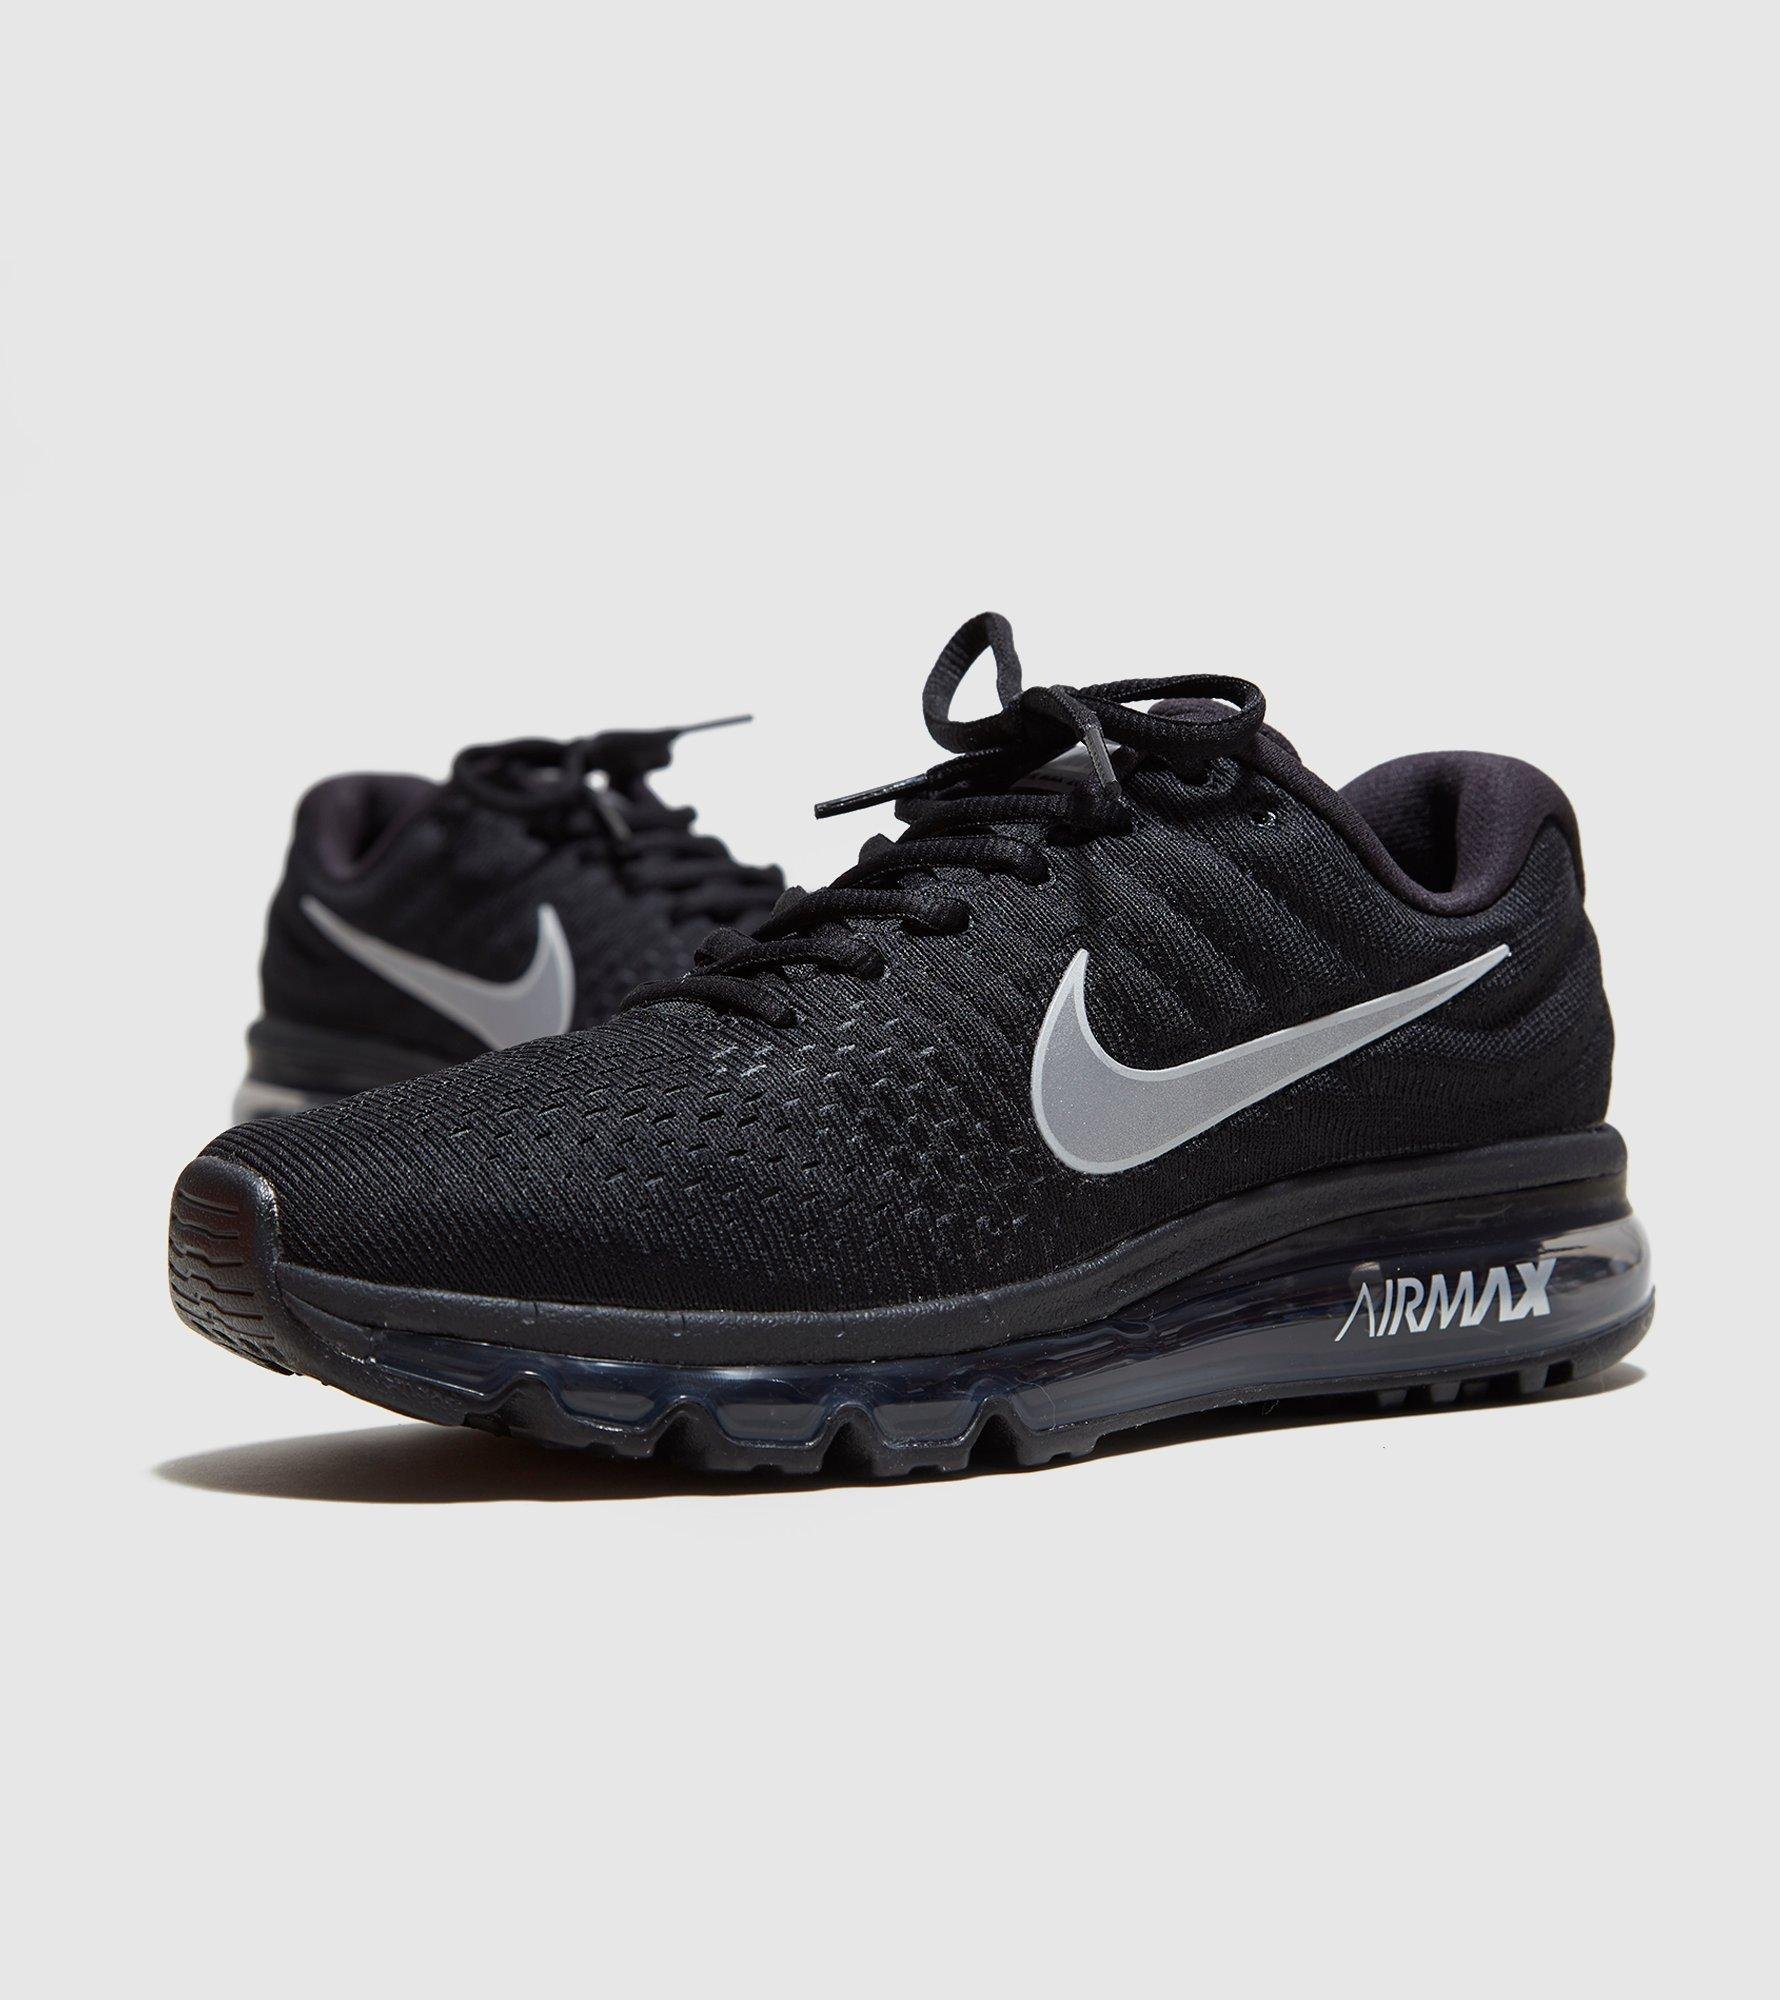 Nike Flywire Shoes Womens